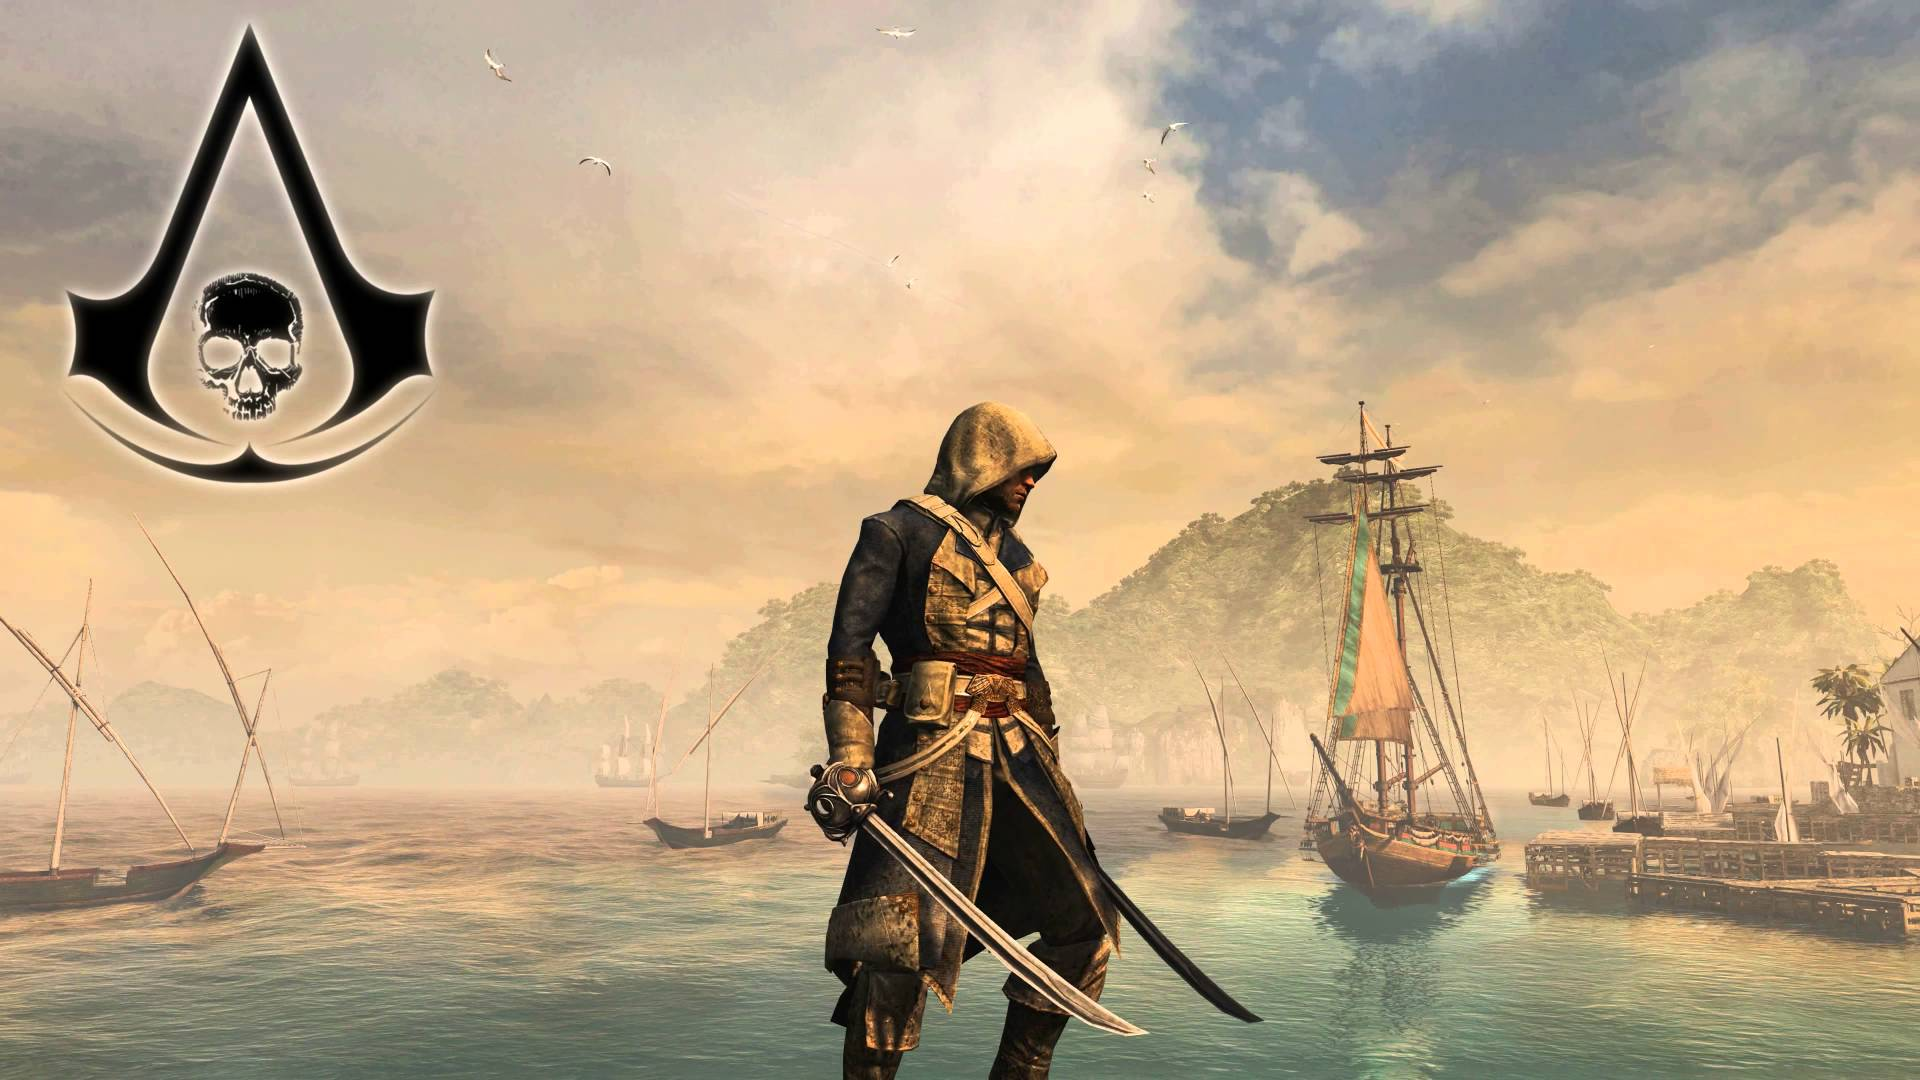 1920x1080px assassins creed live wallpaper wallpapersafari 4k ultra hd live wallpaper assassins creed iv black flag 1920x1080 voltagebd Image collections